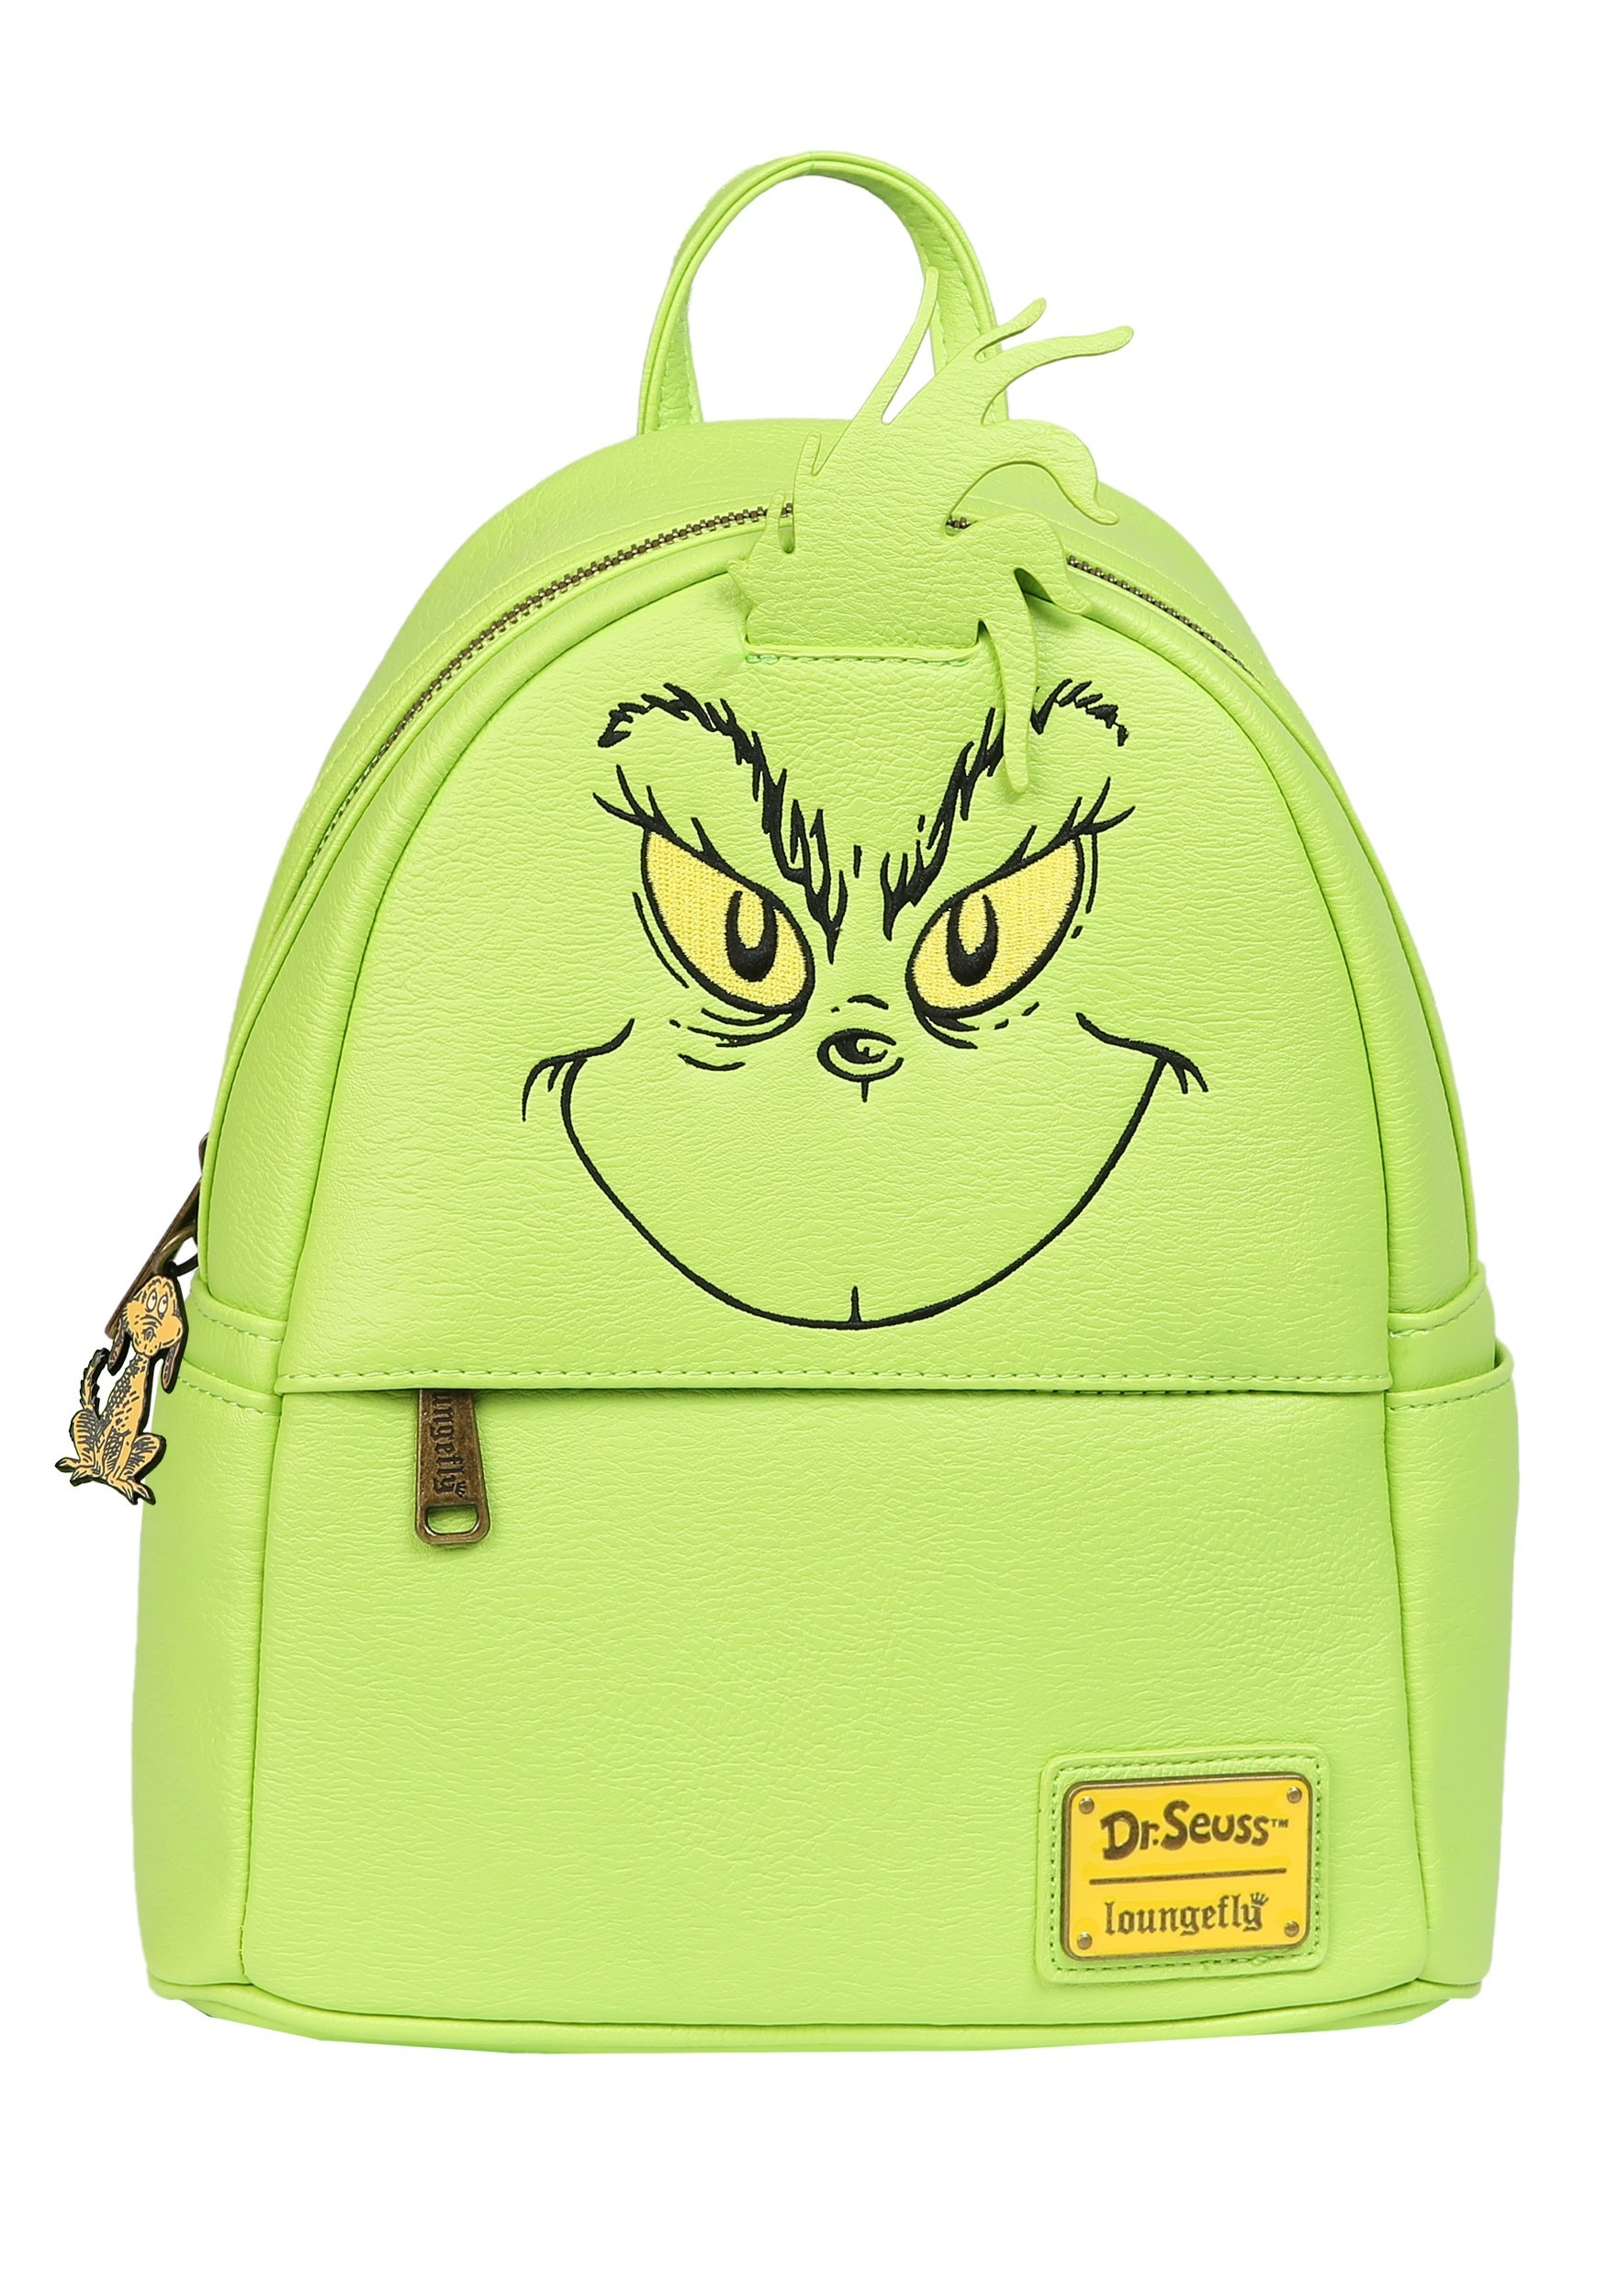 Loungefly Faux Leather The Grinch Mini Backpack